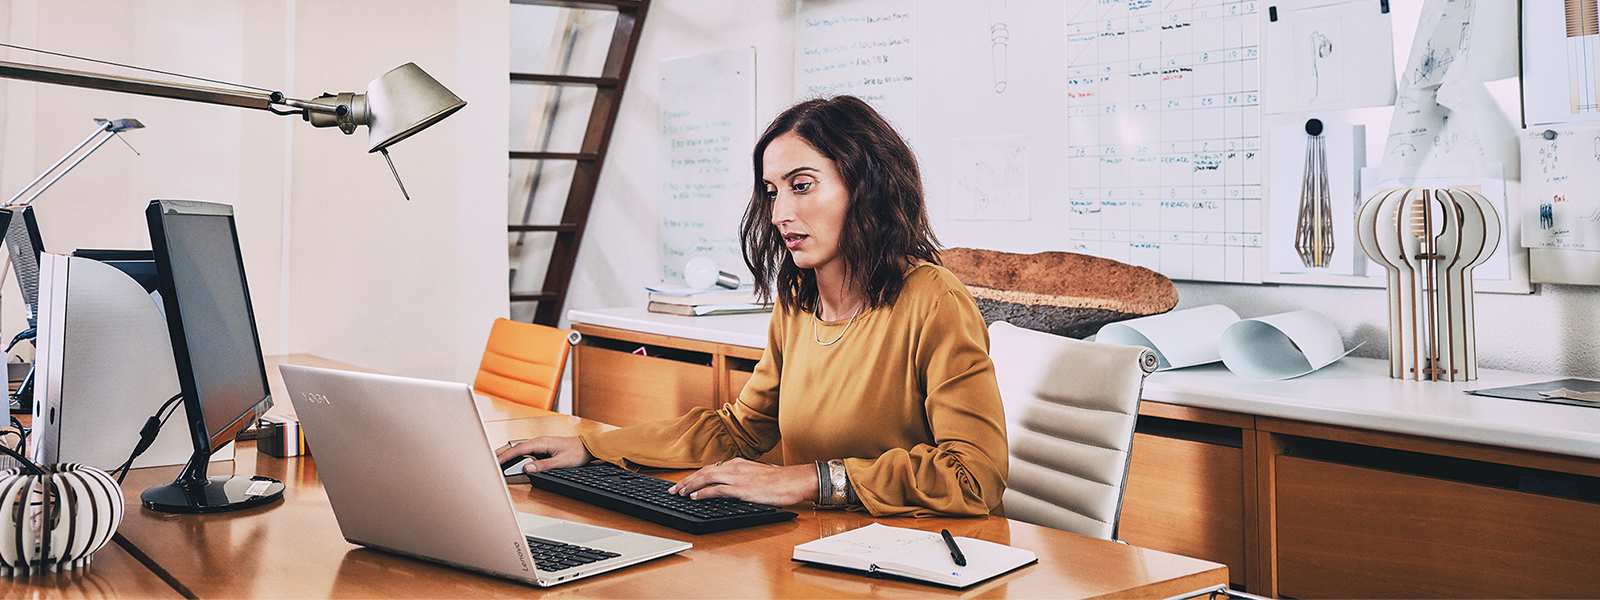 Woman sitting at office desk on computer